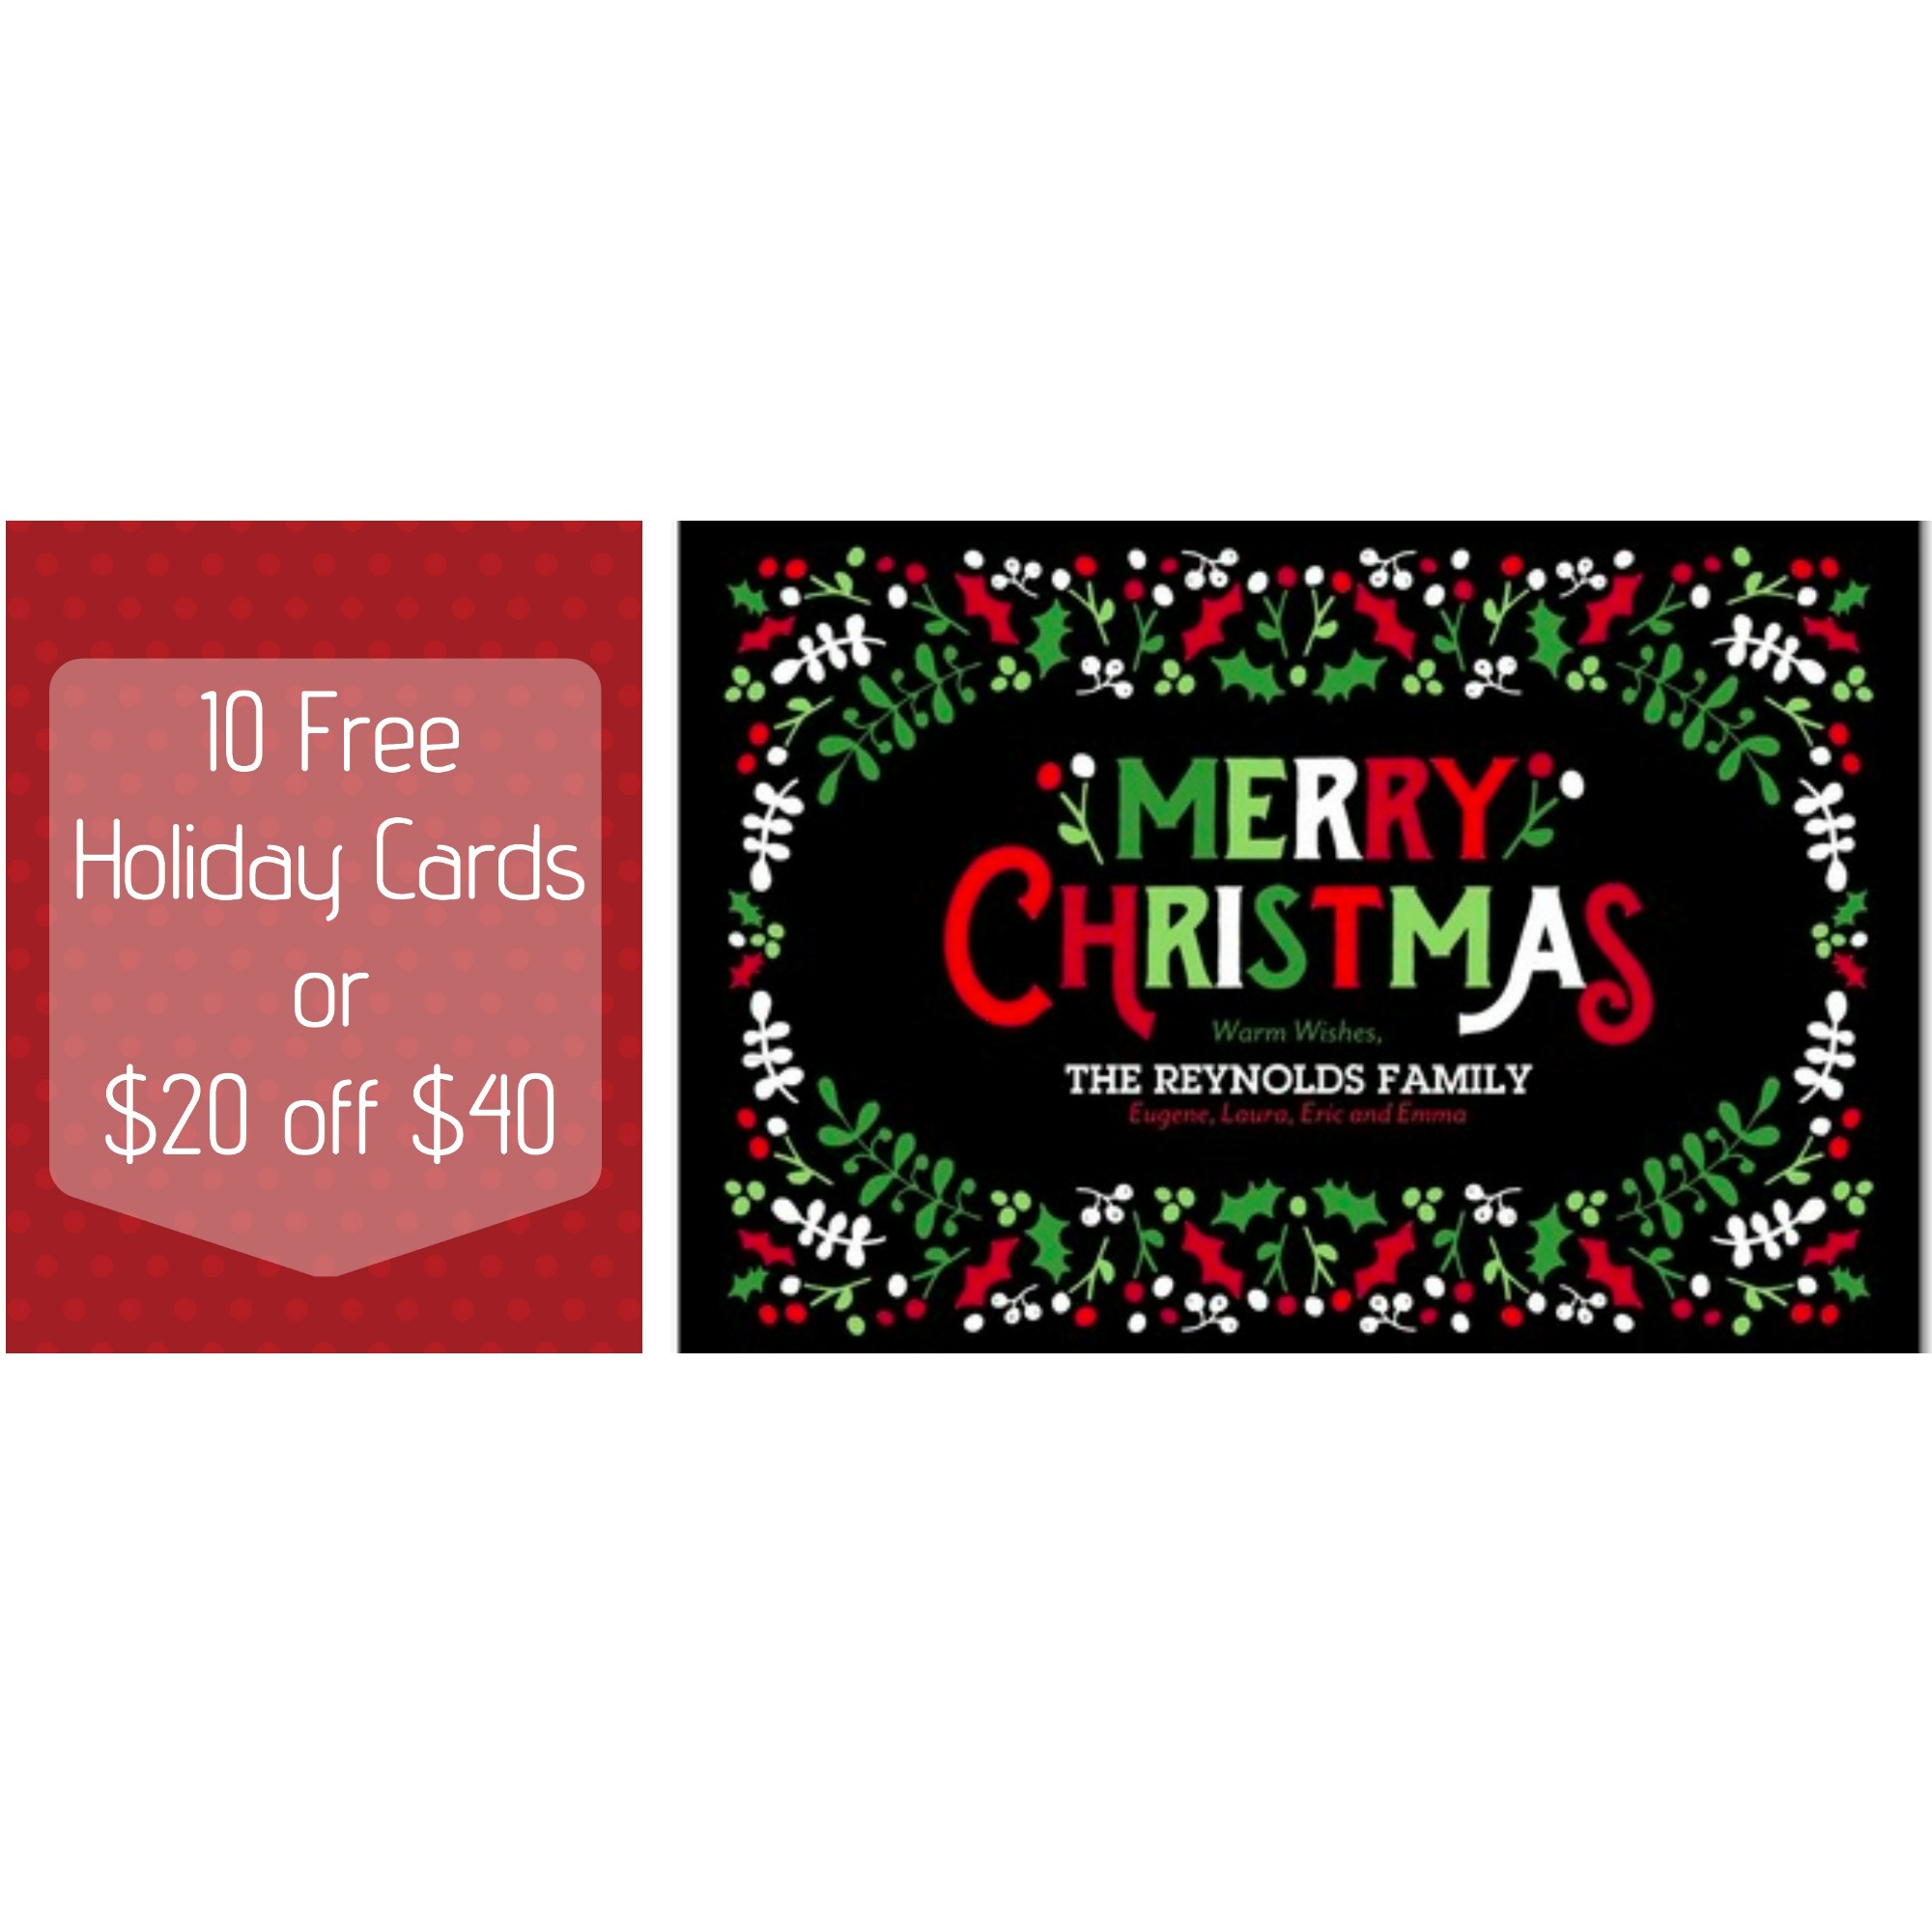 Free Holiday Cards and $20 off!